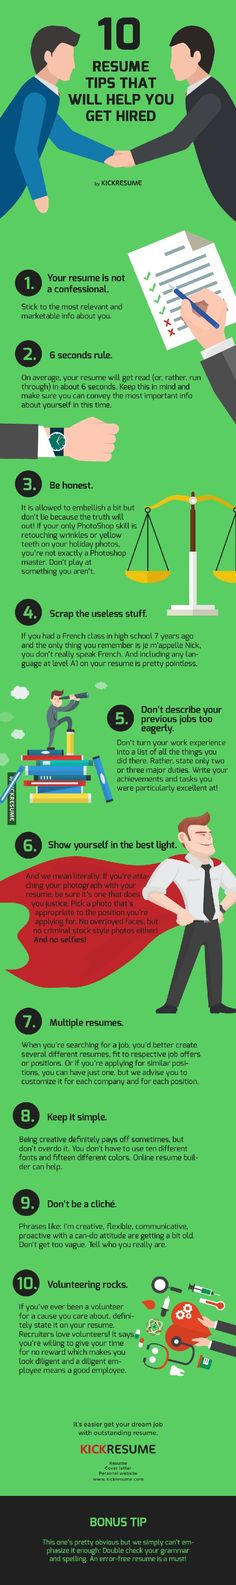 How to Make the Best Resume with 10 Easy Tips College, Easy and - writing a perfect resume